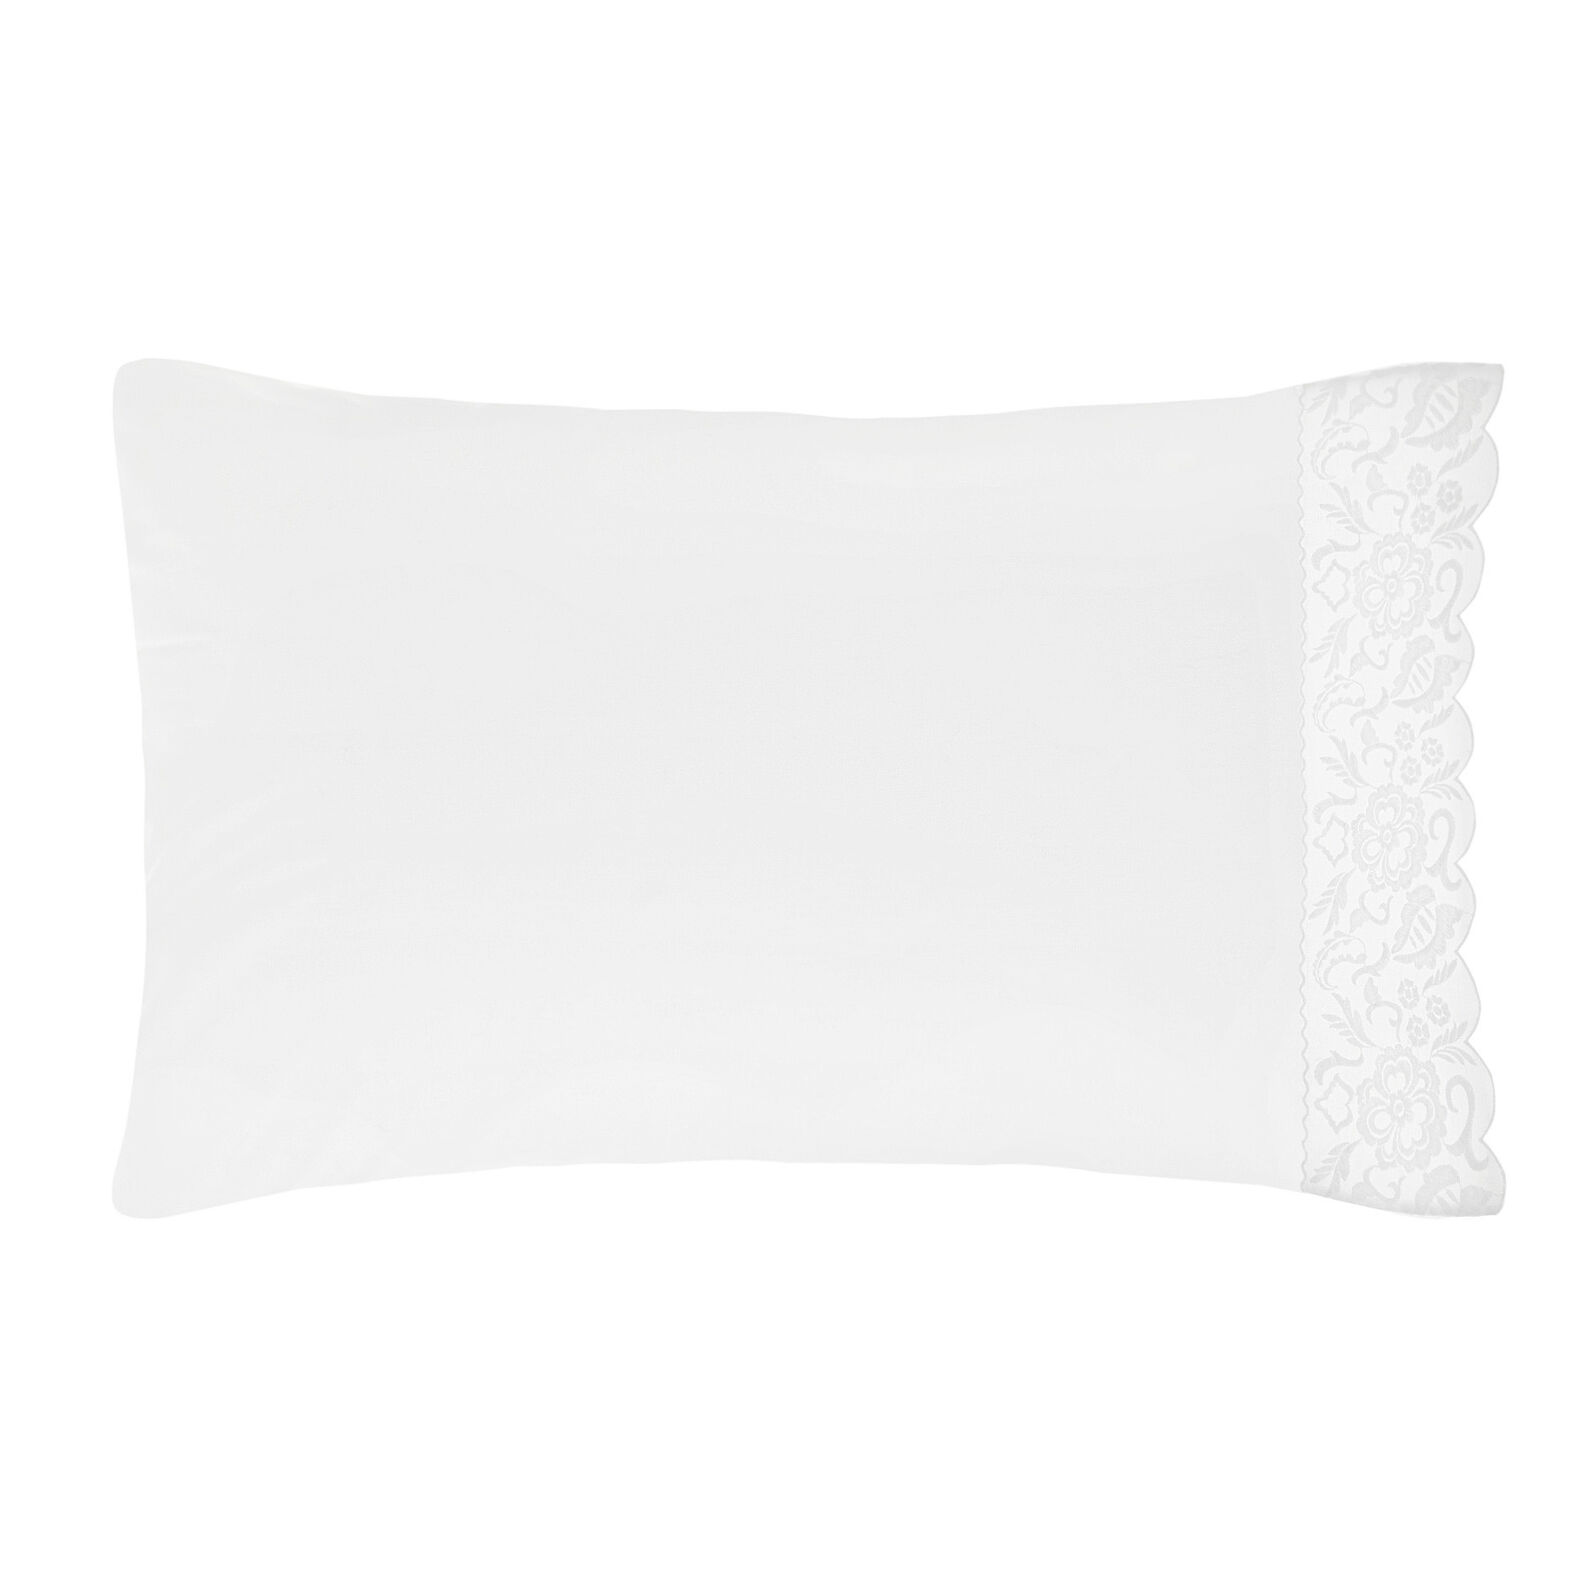 Portofino pillowcase in 100% cotton percale lace